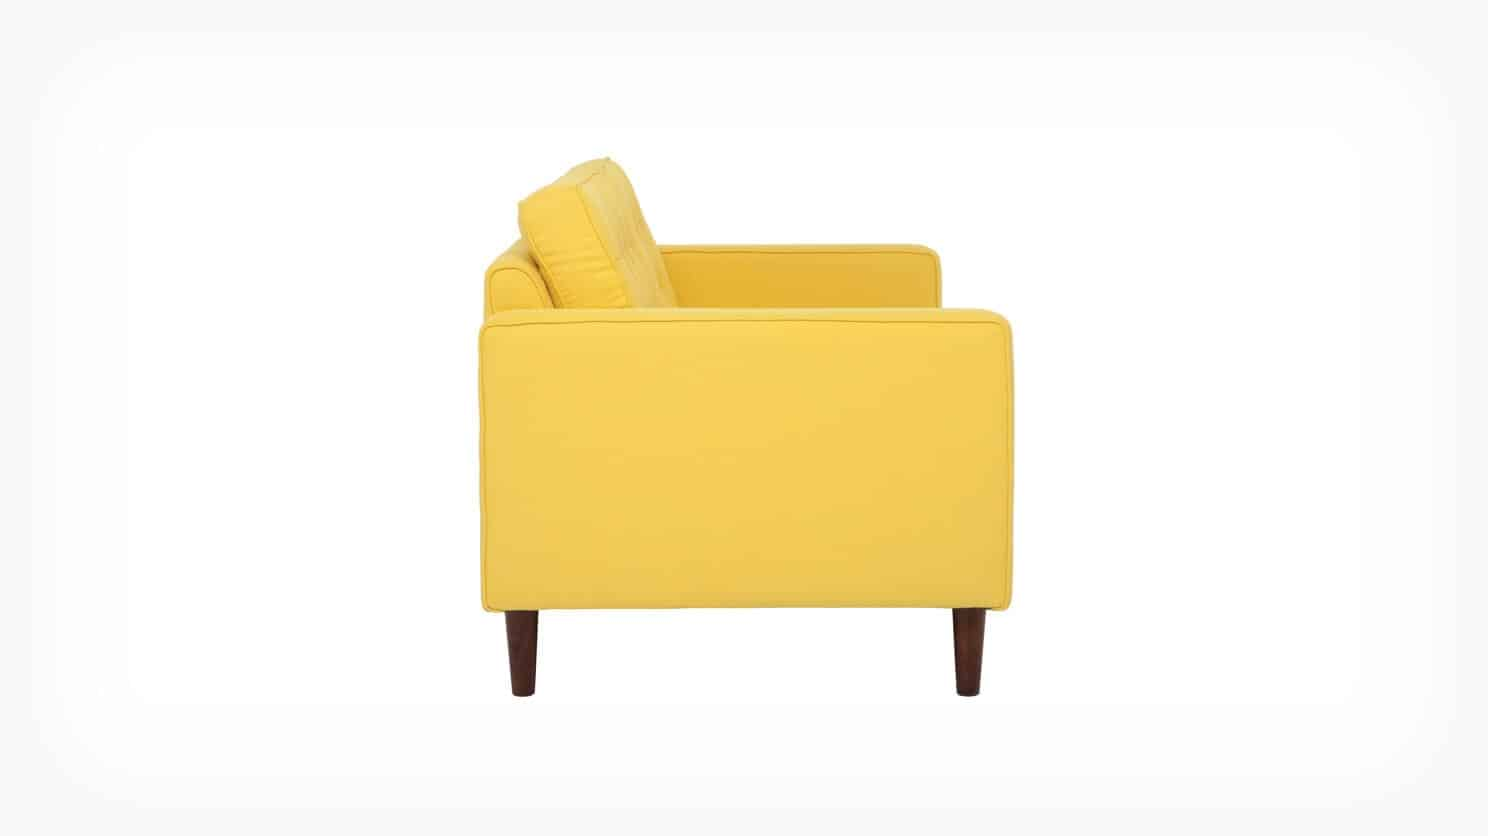 30095 03 2 loveseats reverie loveseat klein sunny side